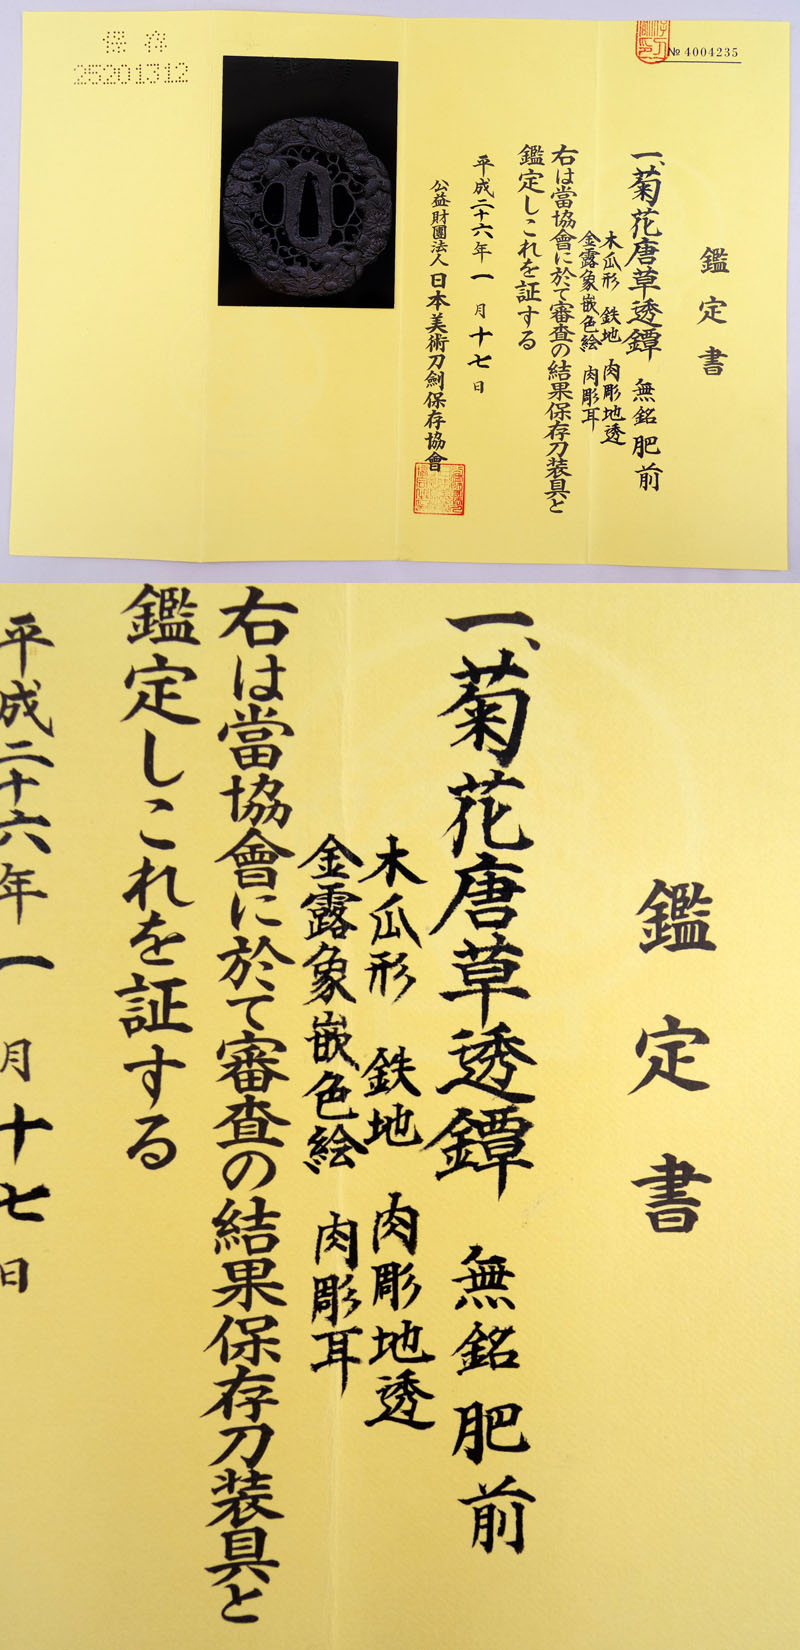 菊花唐草透鍔 無銘 肥前 Picture of Certificate